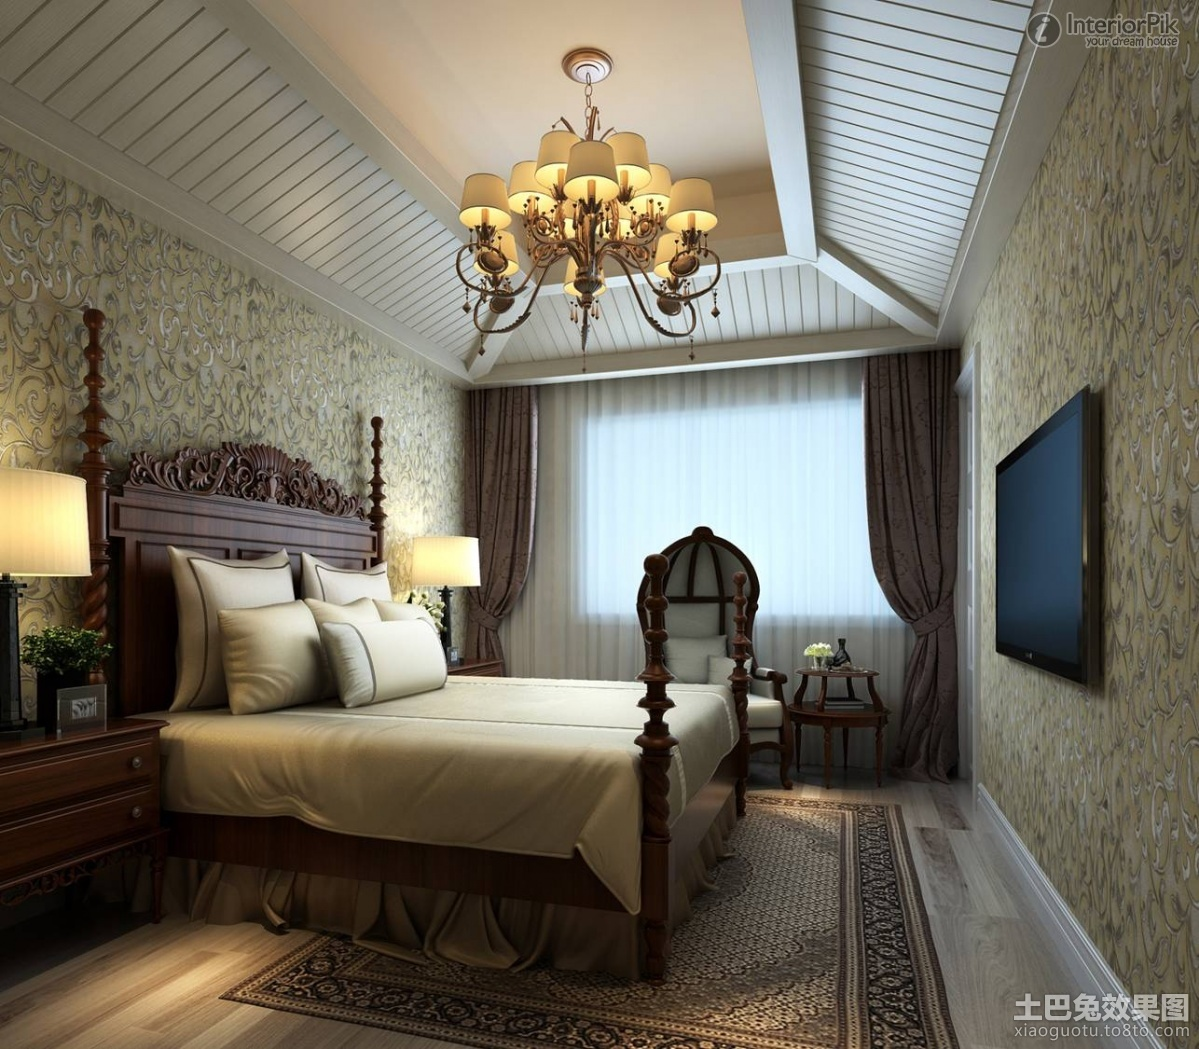 Top 7 ideas to make your bedroom romantic romantical aid Chandelier in master bedroom